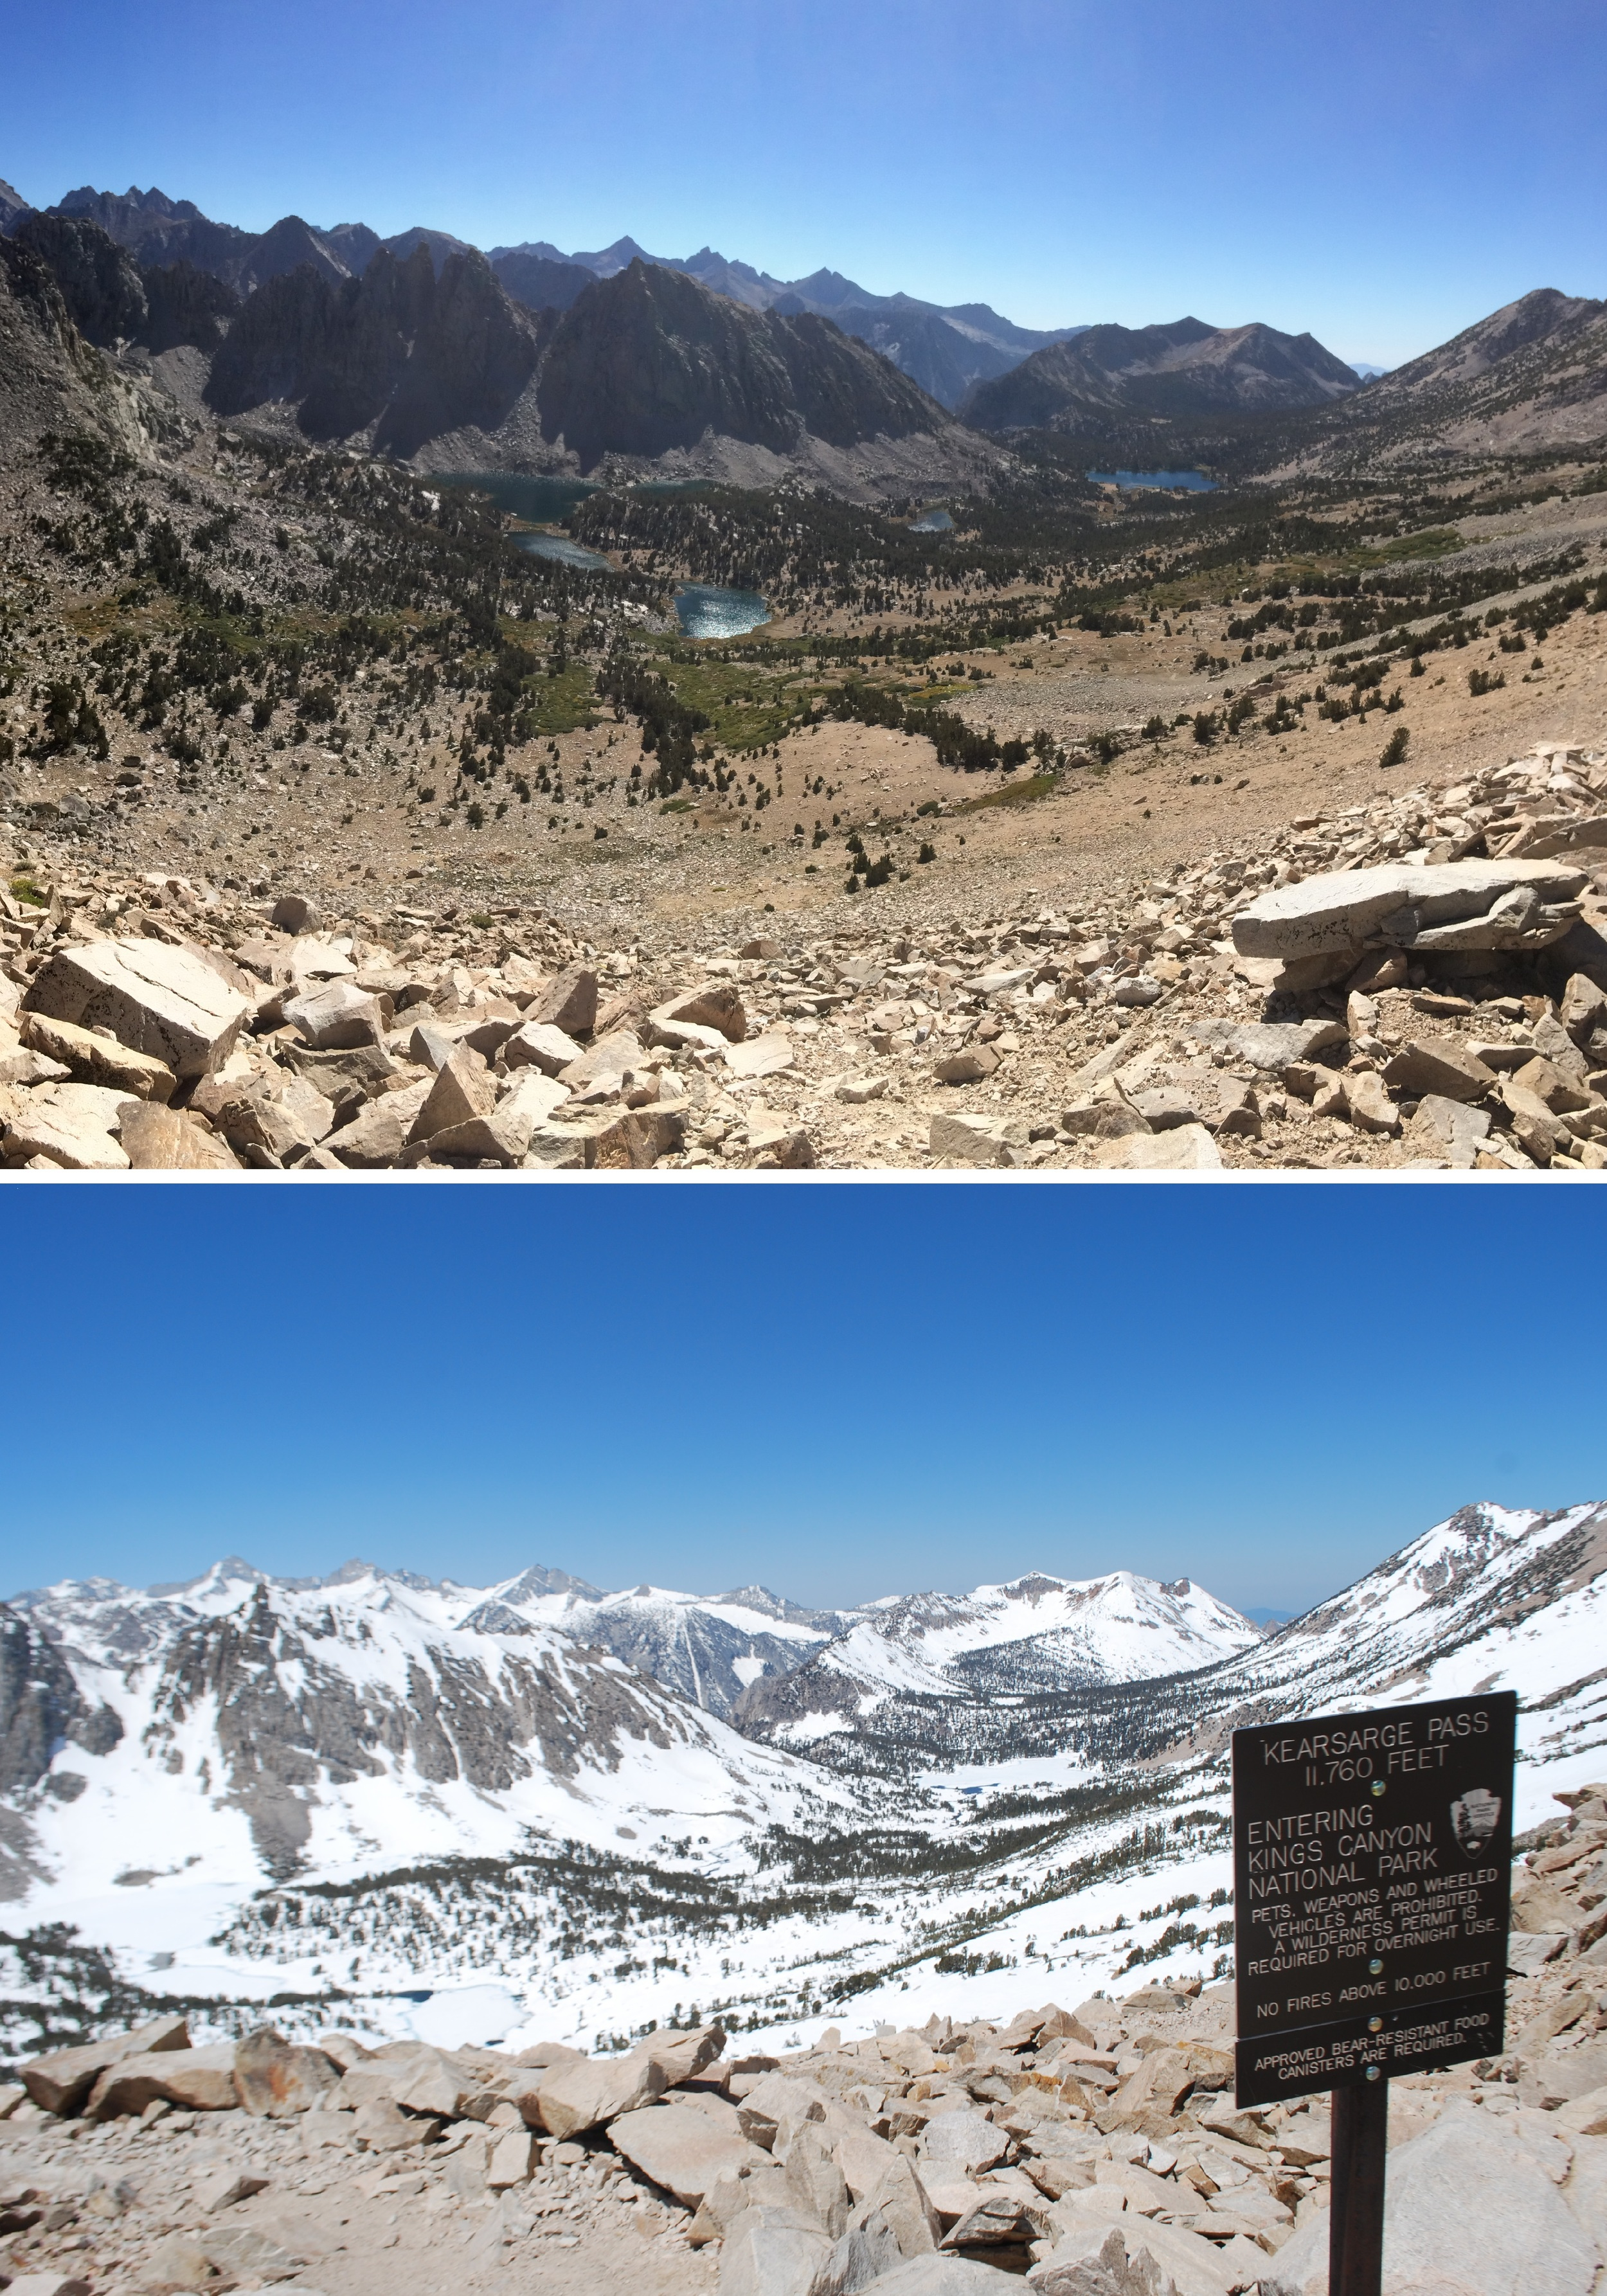 Comparison at Kearsarge Pass in the Sierra Nevada mountains. Top photo taken in summer conditions on August 31, 2014, bottom photo taken June 15, 2011.